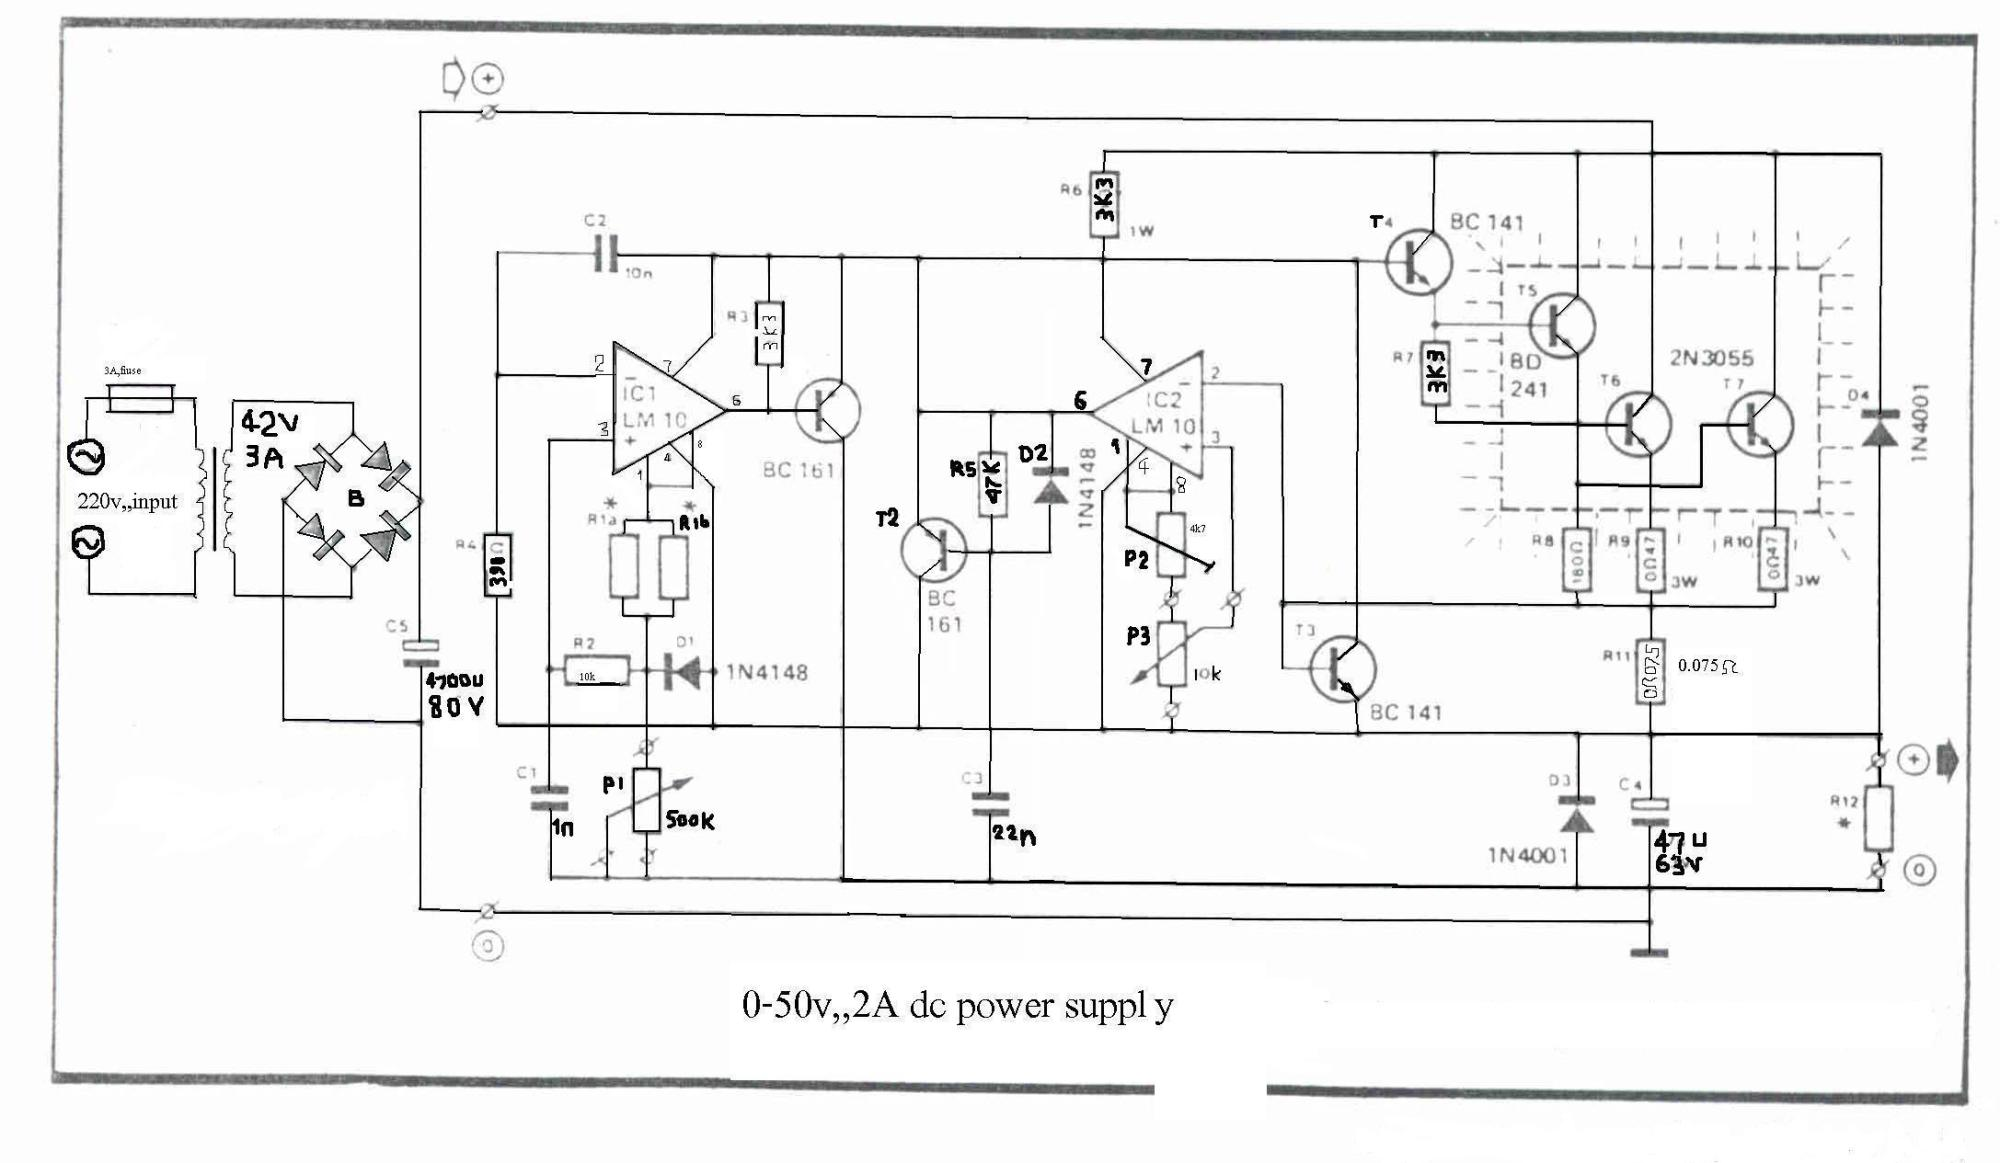 hight resolution of how to build 0 50v 2a bench power supply circuit diagram